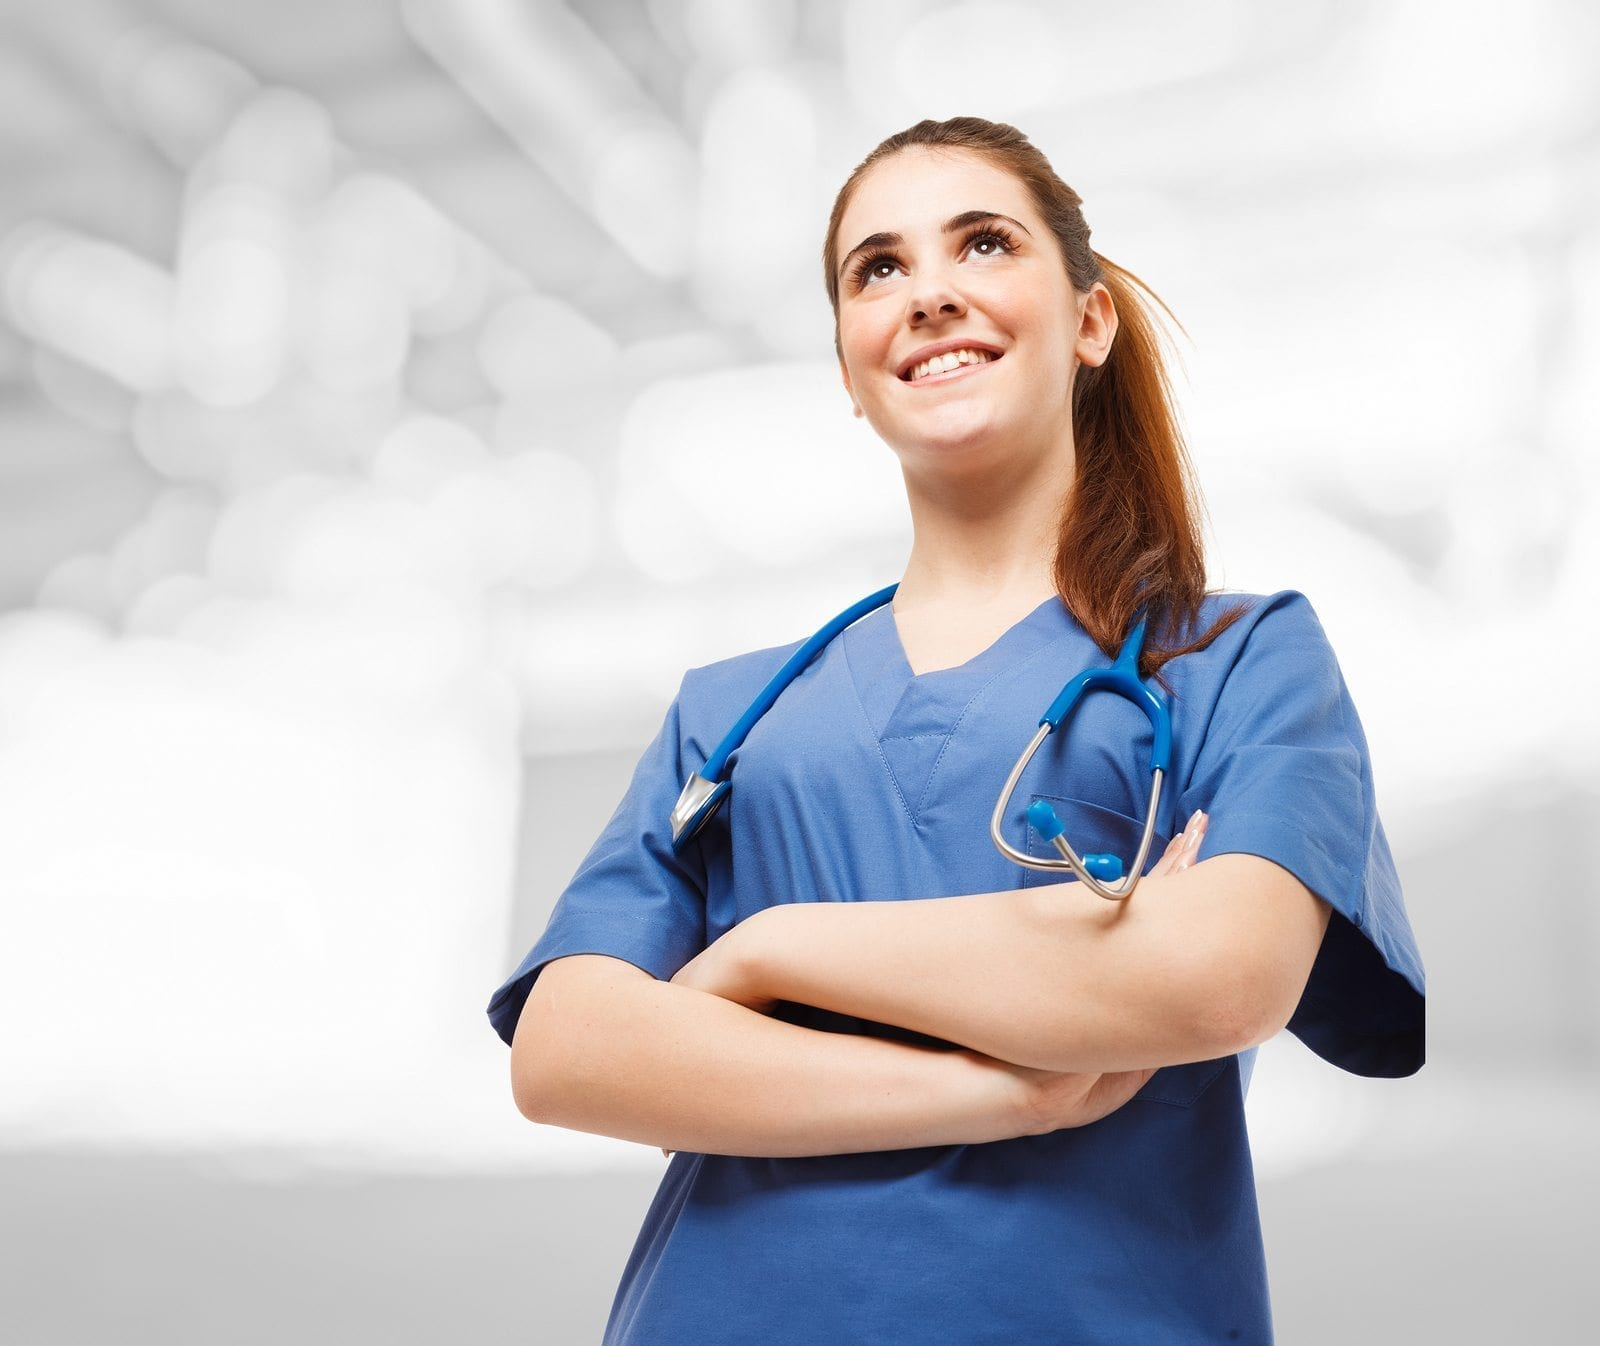 Delaware lpn requirements and training programs lpn programs orlando fl 1betcityfo Choice Image